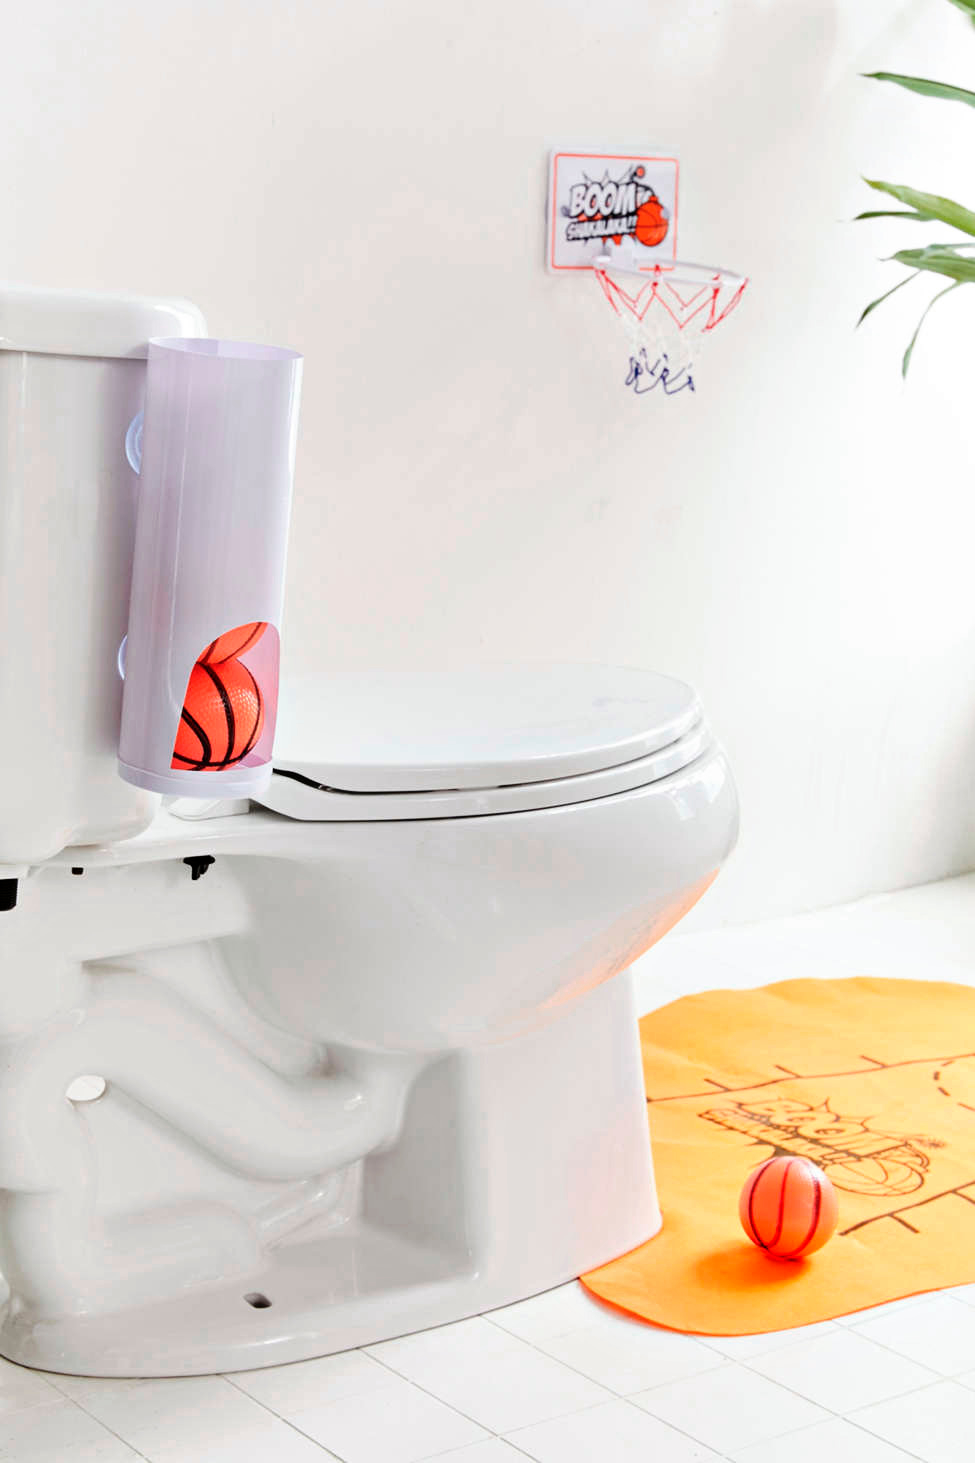 Toilet Basketball From Urban OutfittersJameela Jamil